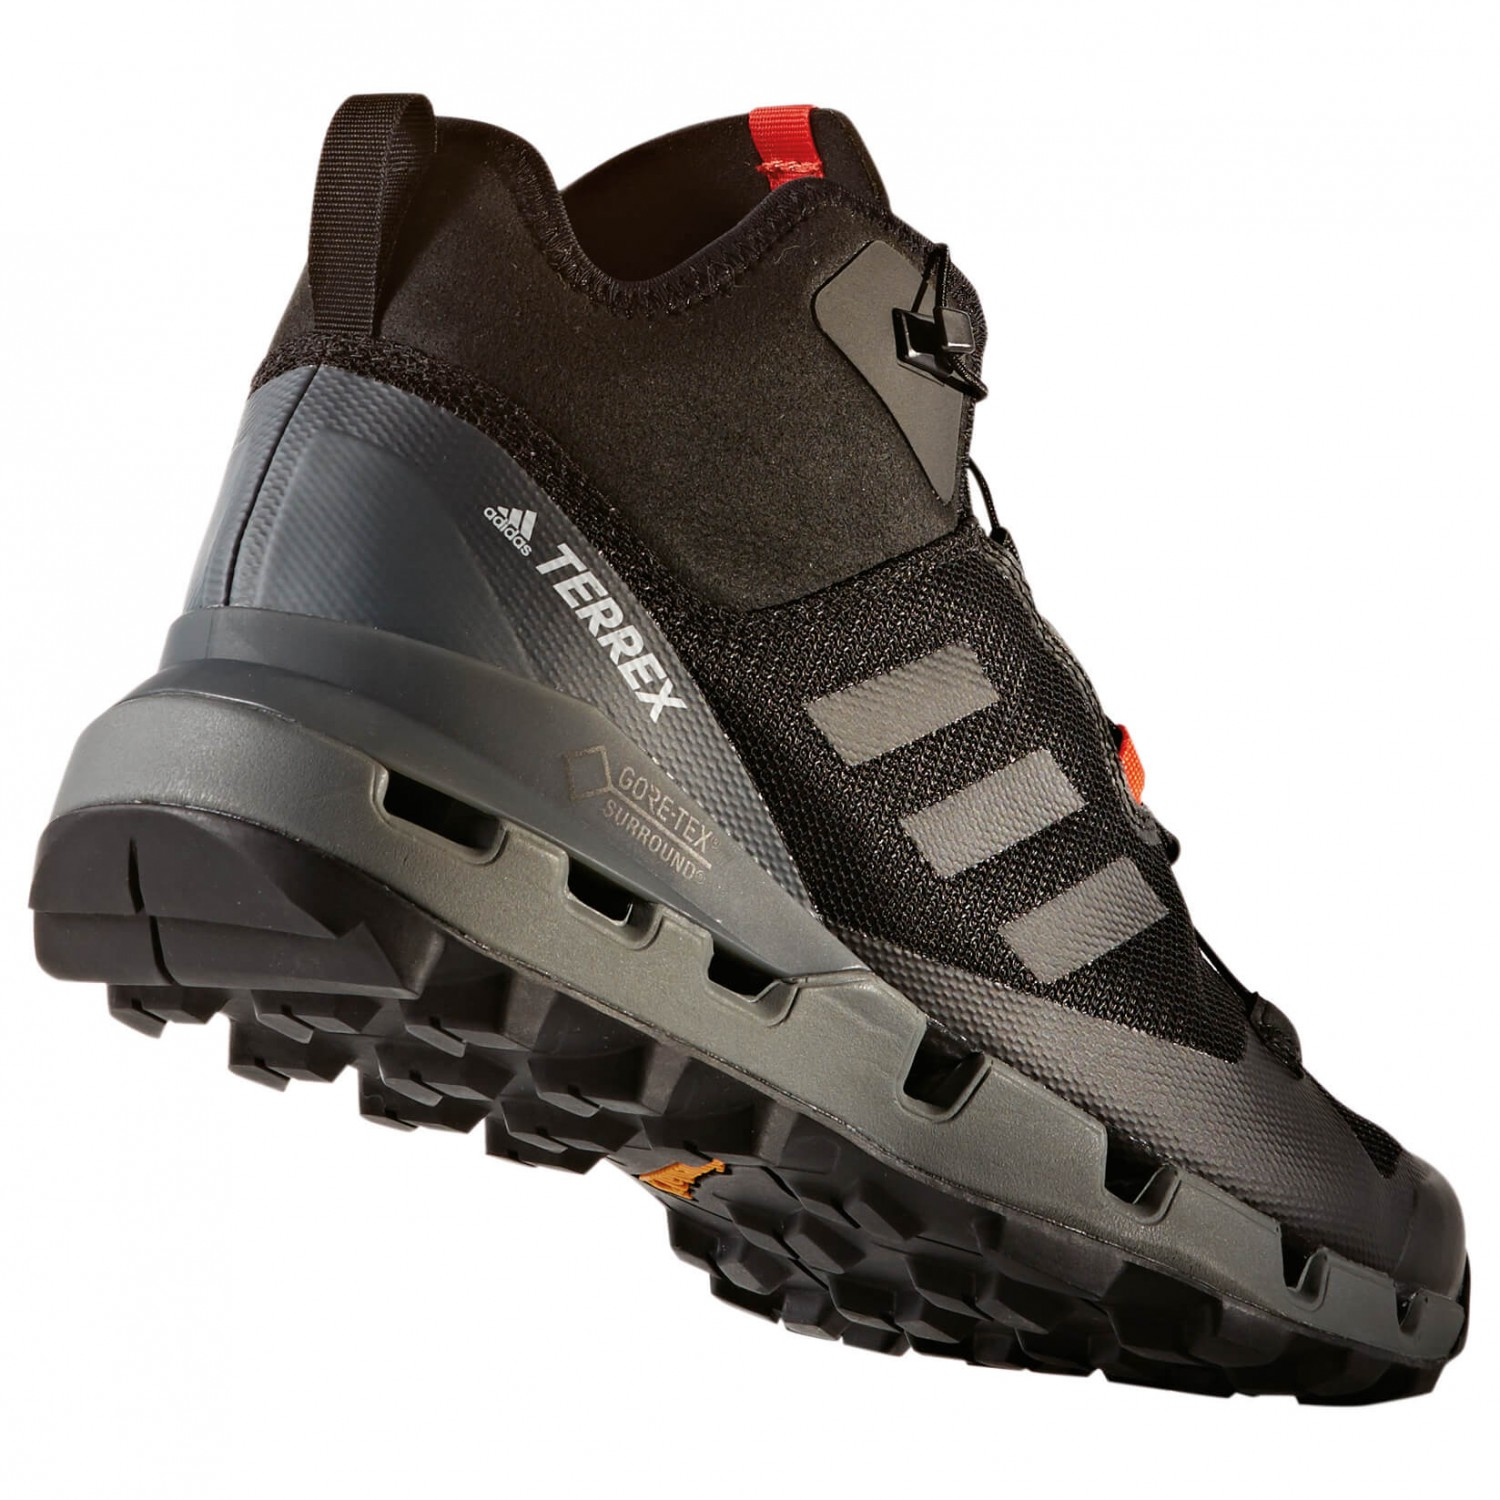 05e46a4dce5 ... adidas - Terrex Fast Mid GTX-Surround - Walking boots ...